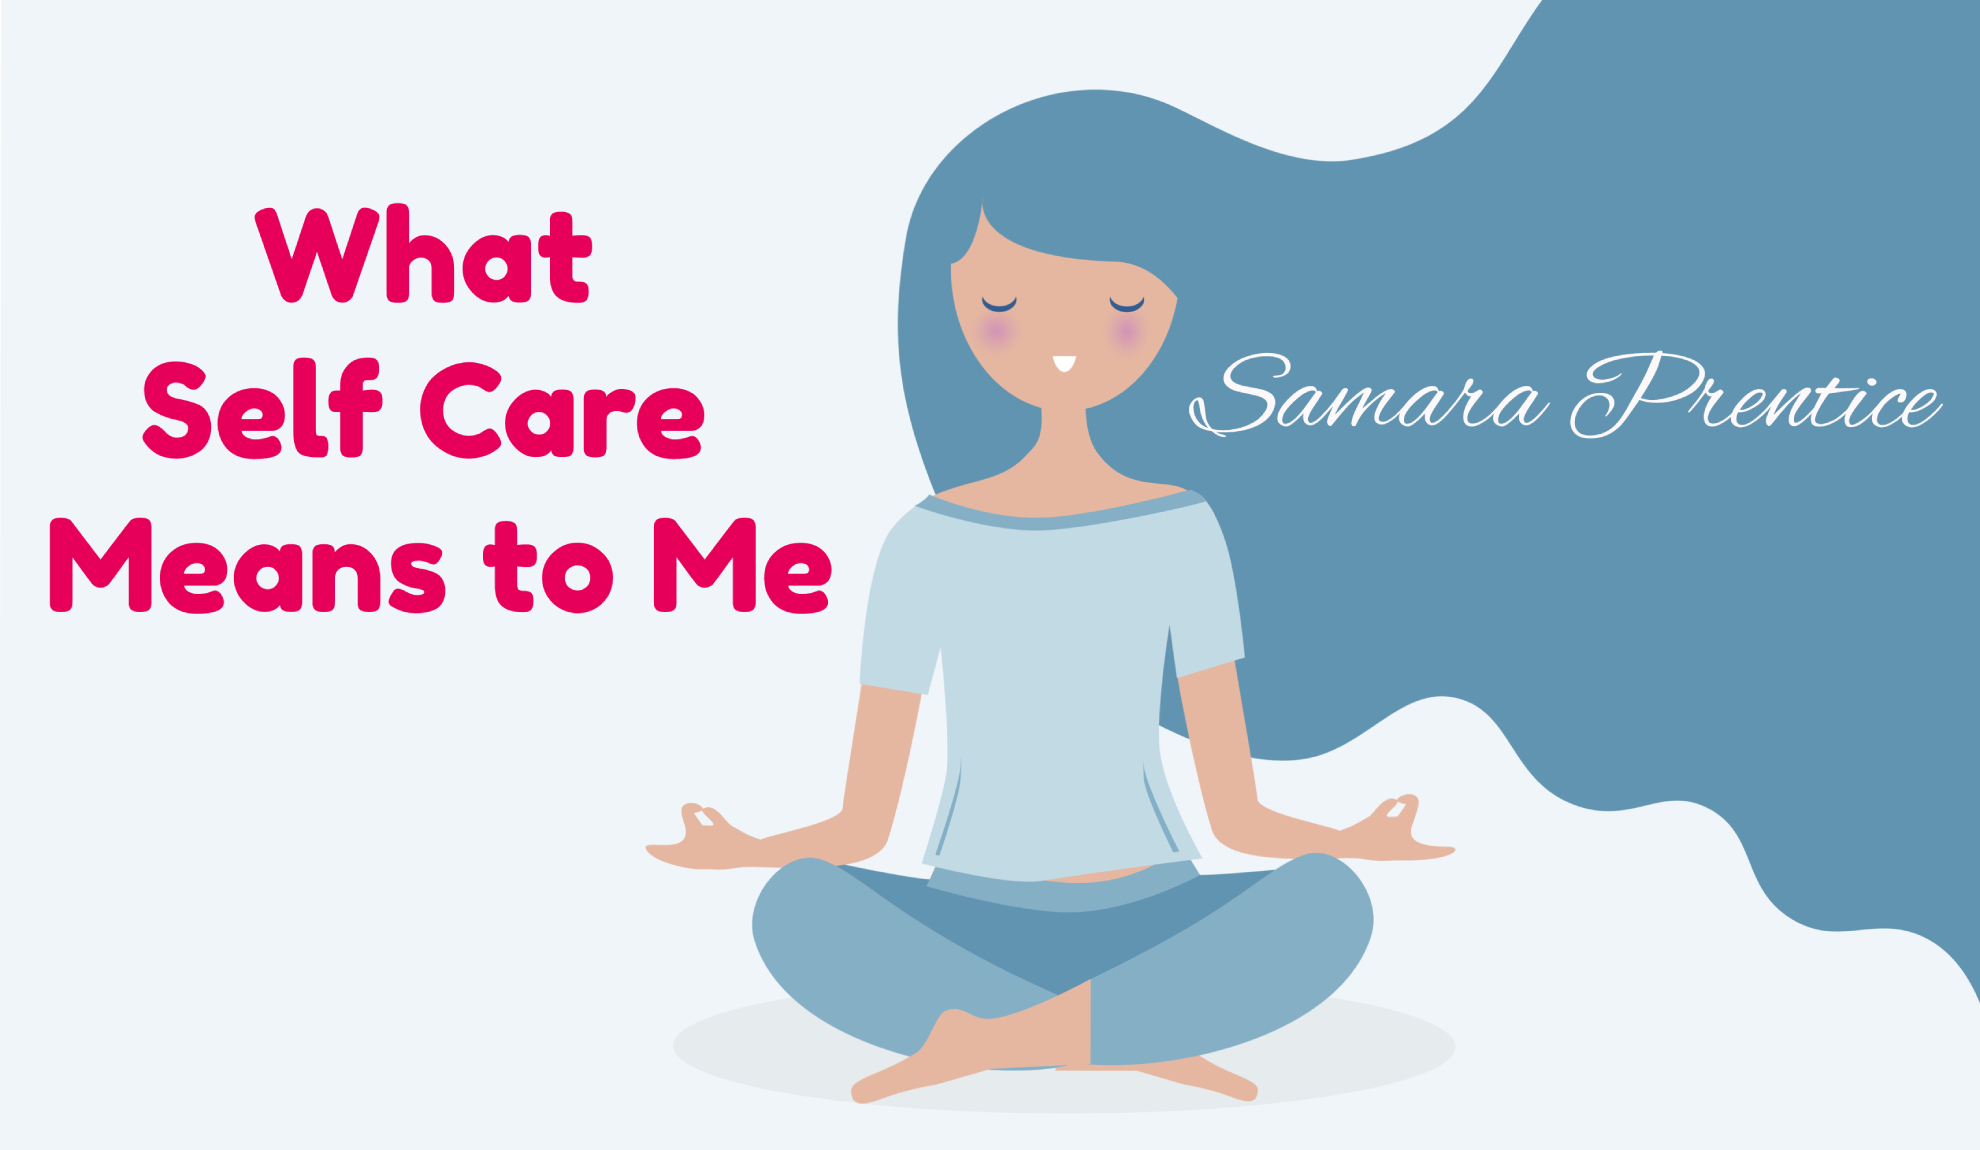 What Self Care Means To Me - Samara Prentice